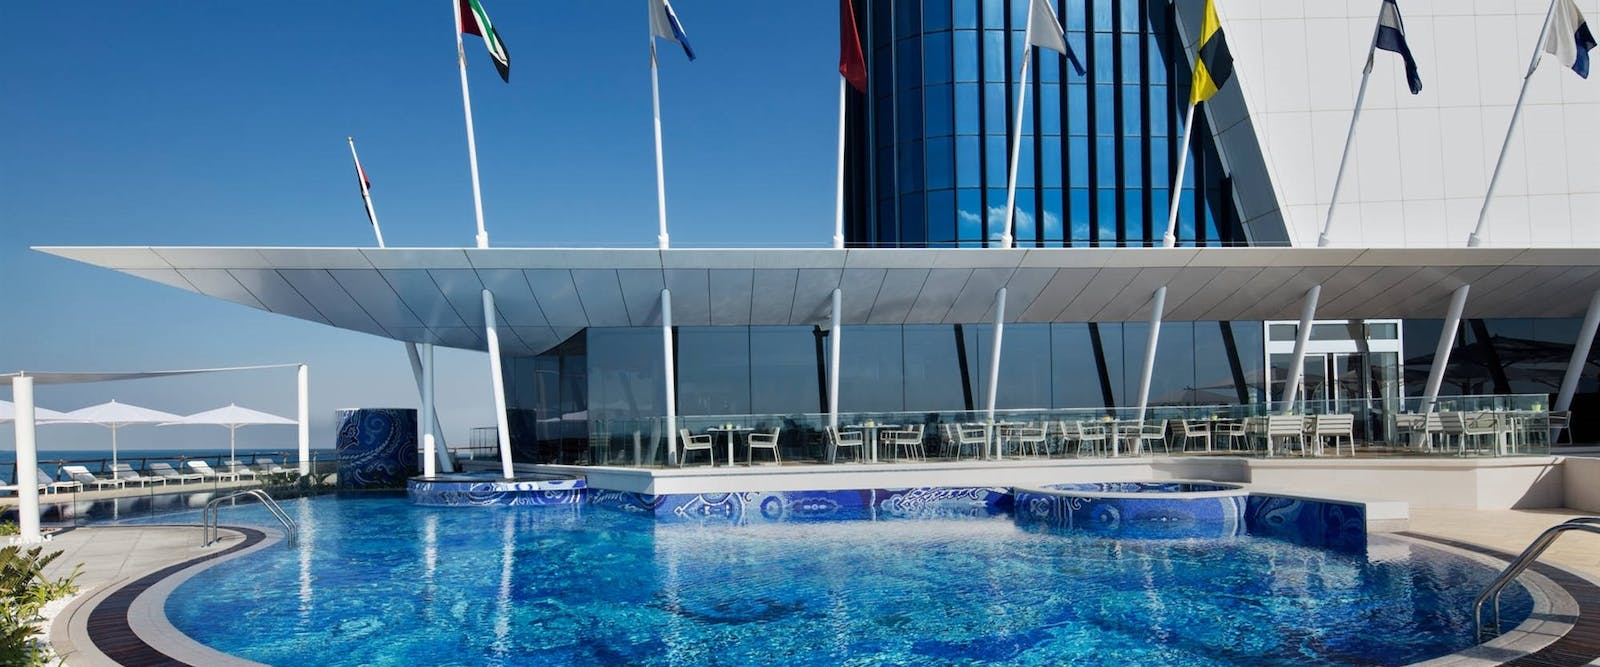 The pool at Burj Al Arab, Dubai